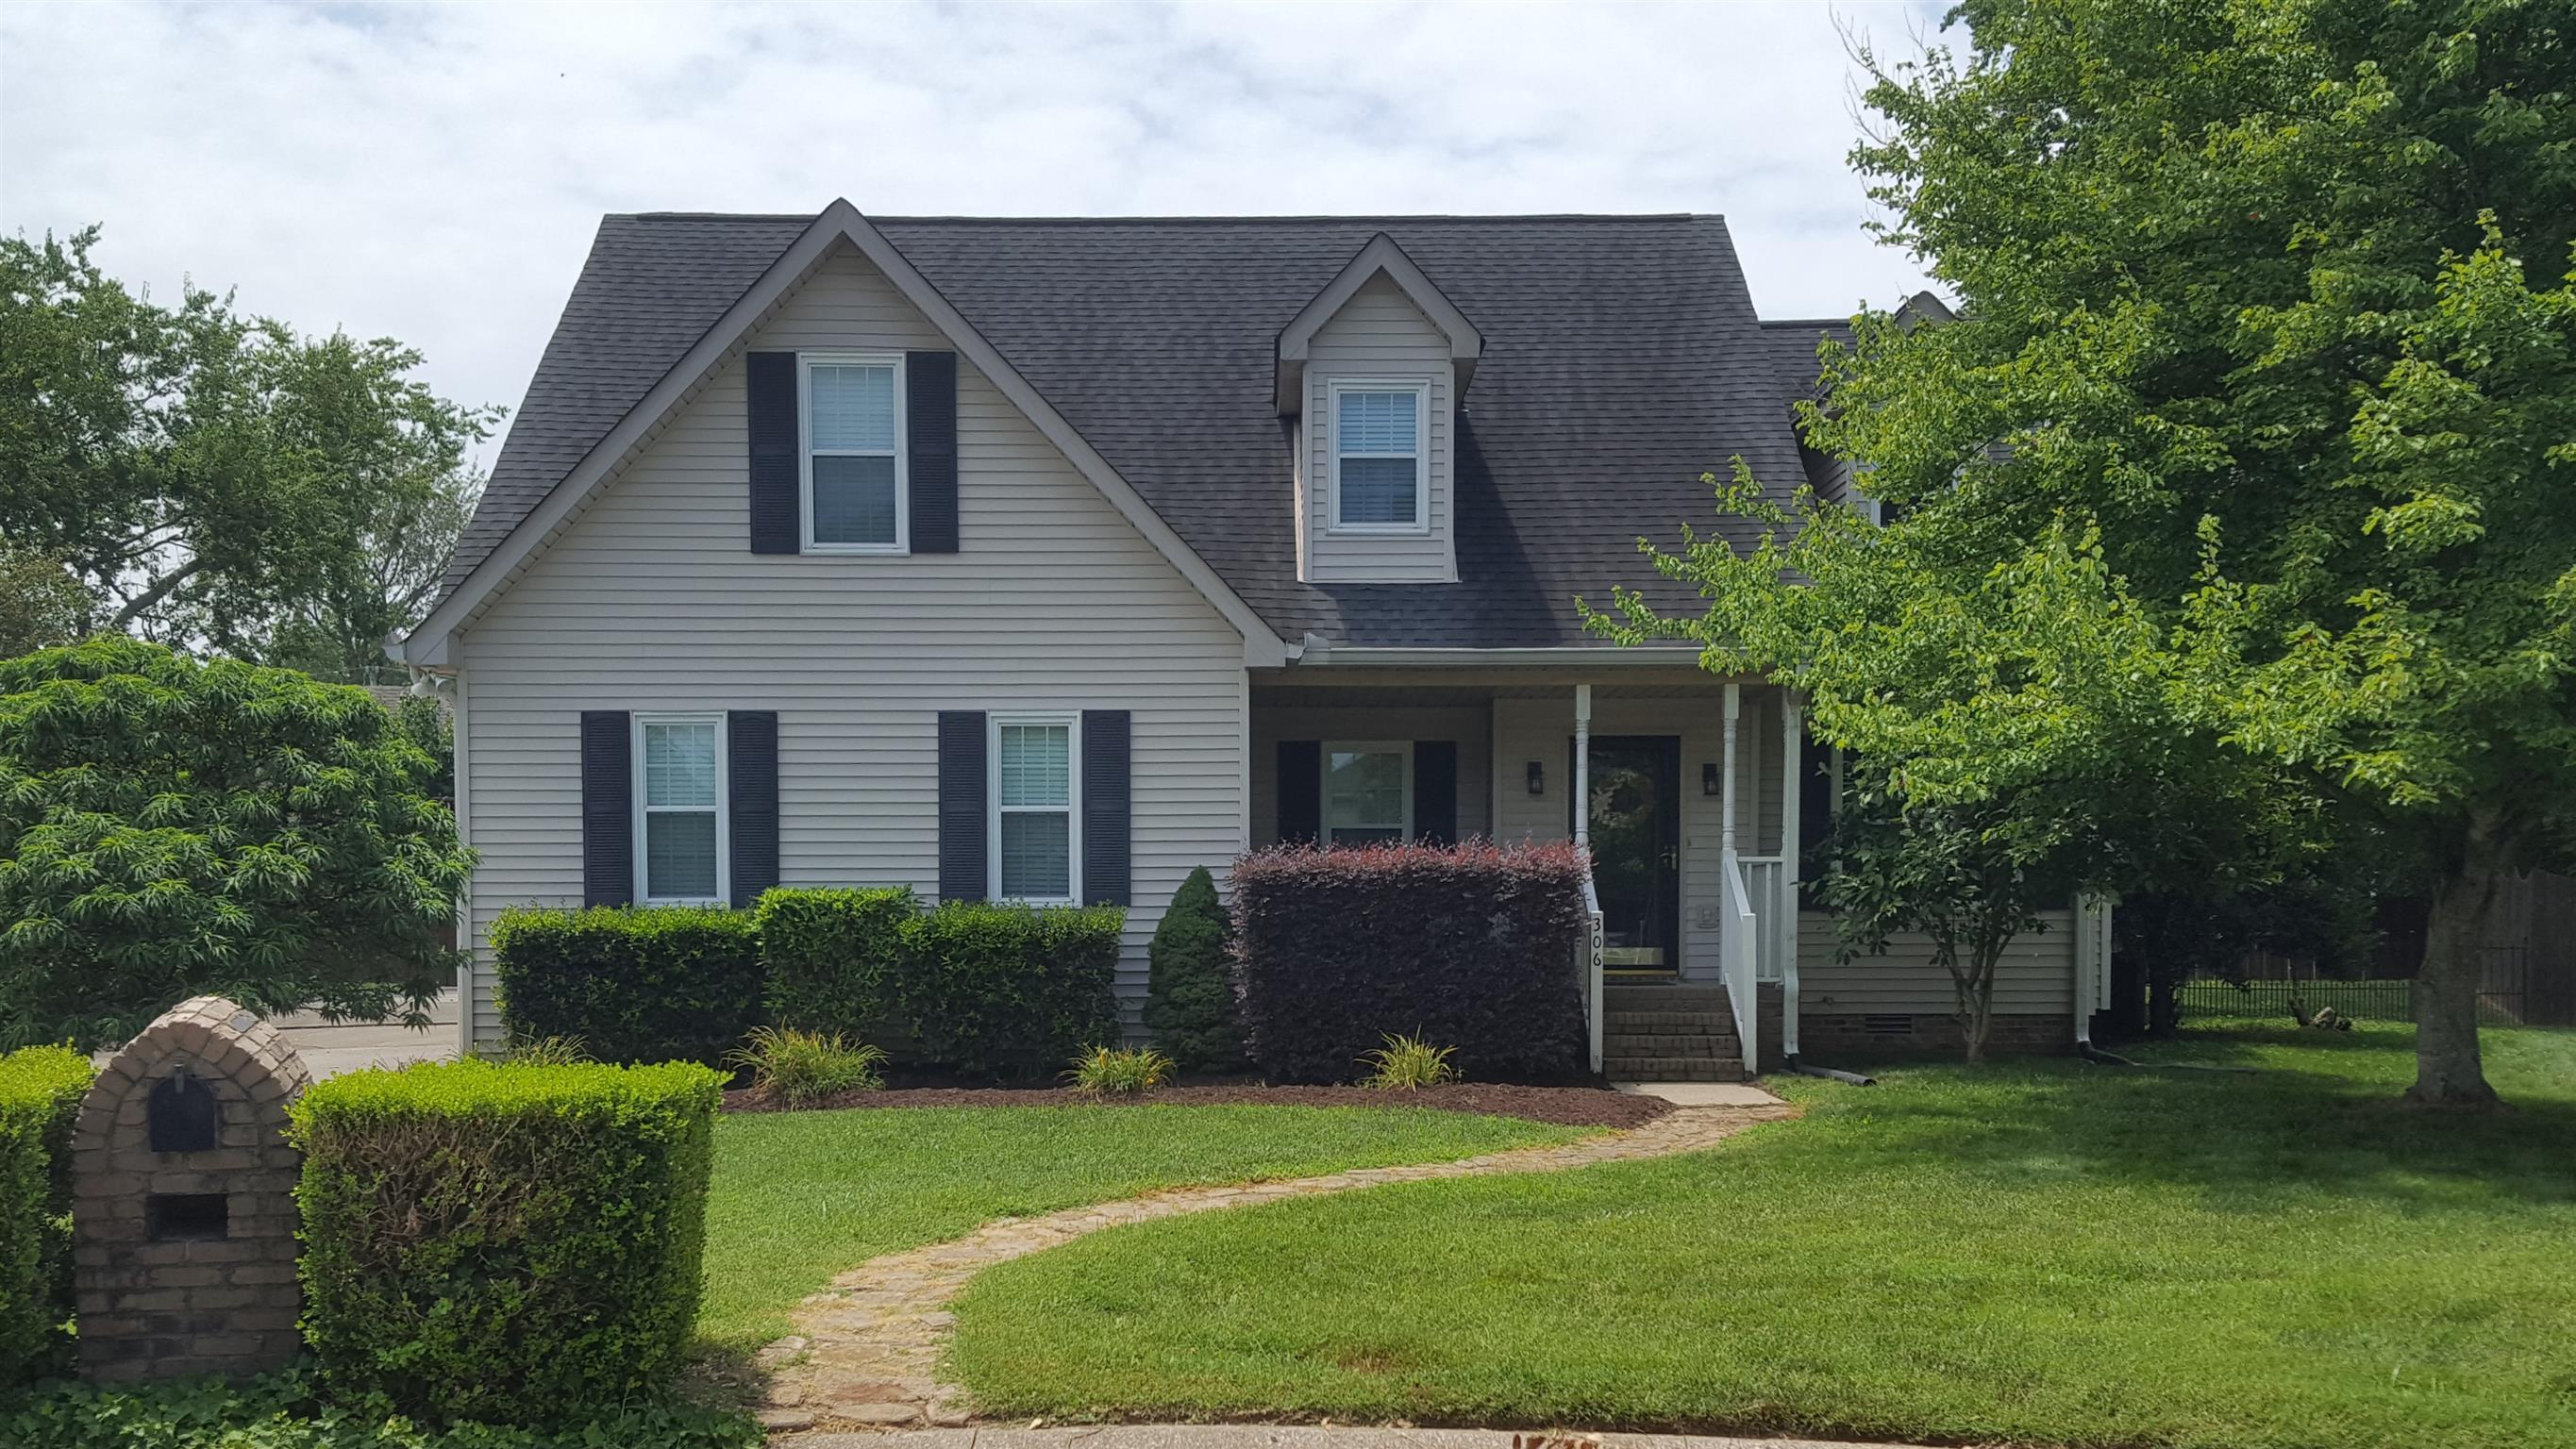 306 Hamblen Ct, Murfreesboro in Rutherford County County, TN 37130 Home for Sale